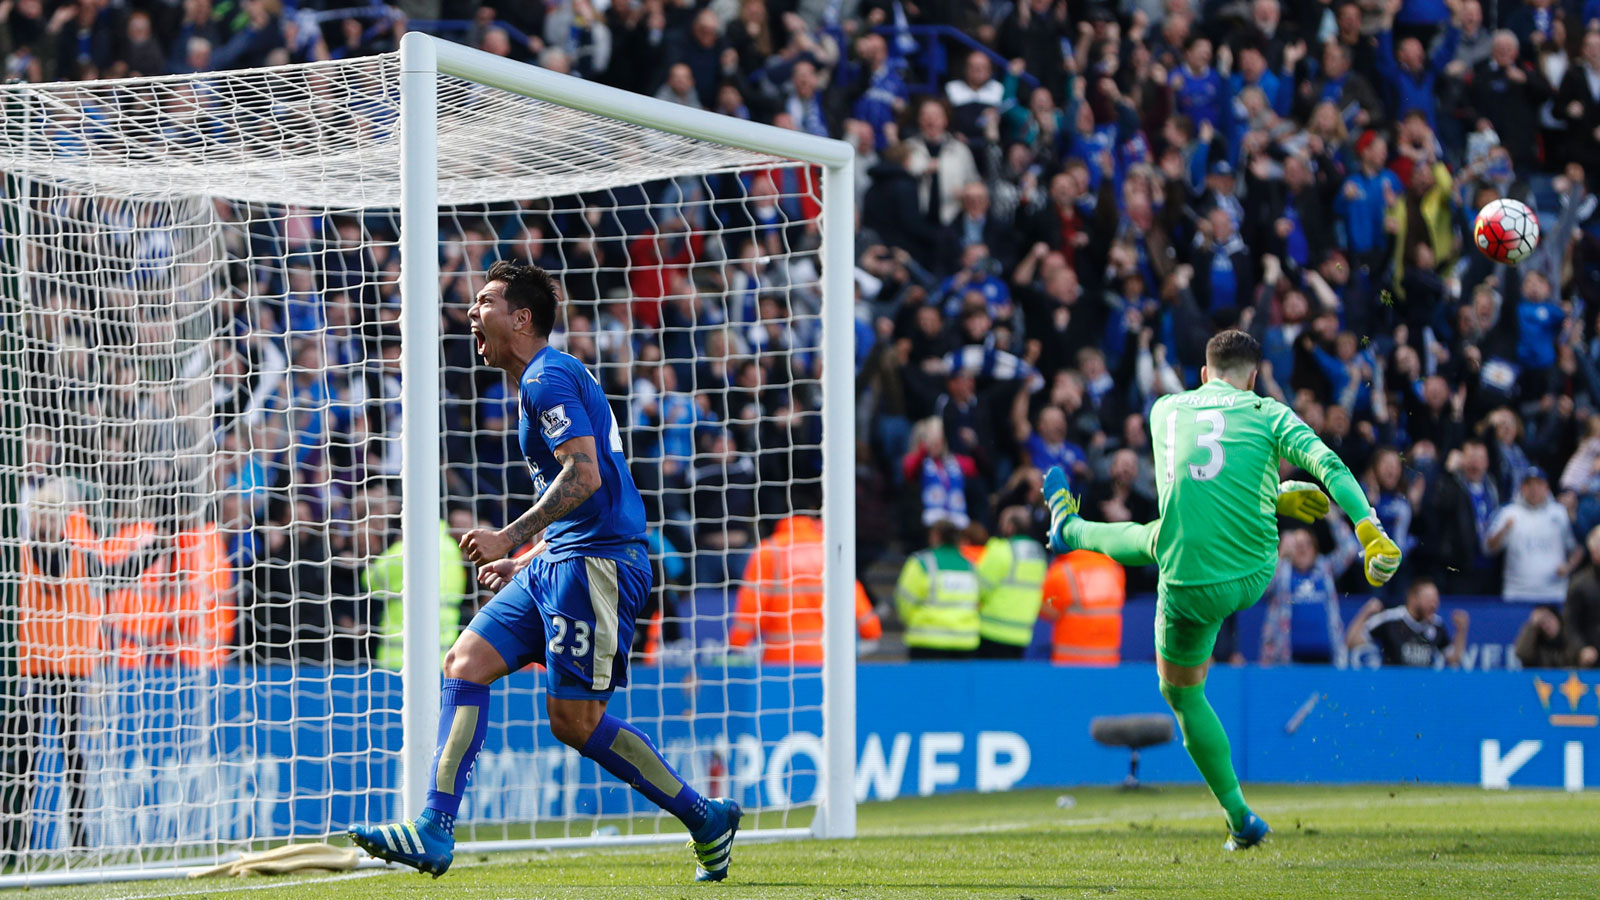 Leonardo Ulloa calmly converted a penalty kick deep into second-half stoppage time to cap a game full of controversy and secure a vital point in a 2-2 draw with West Ham.